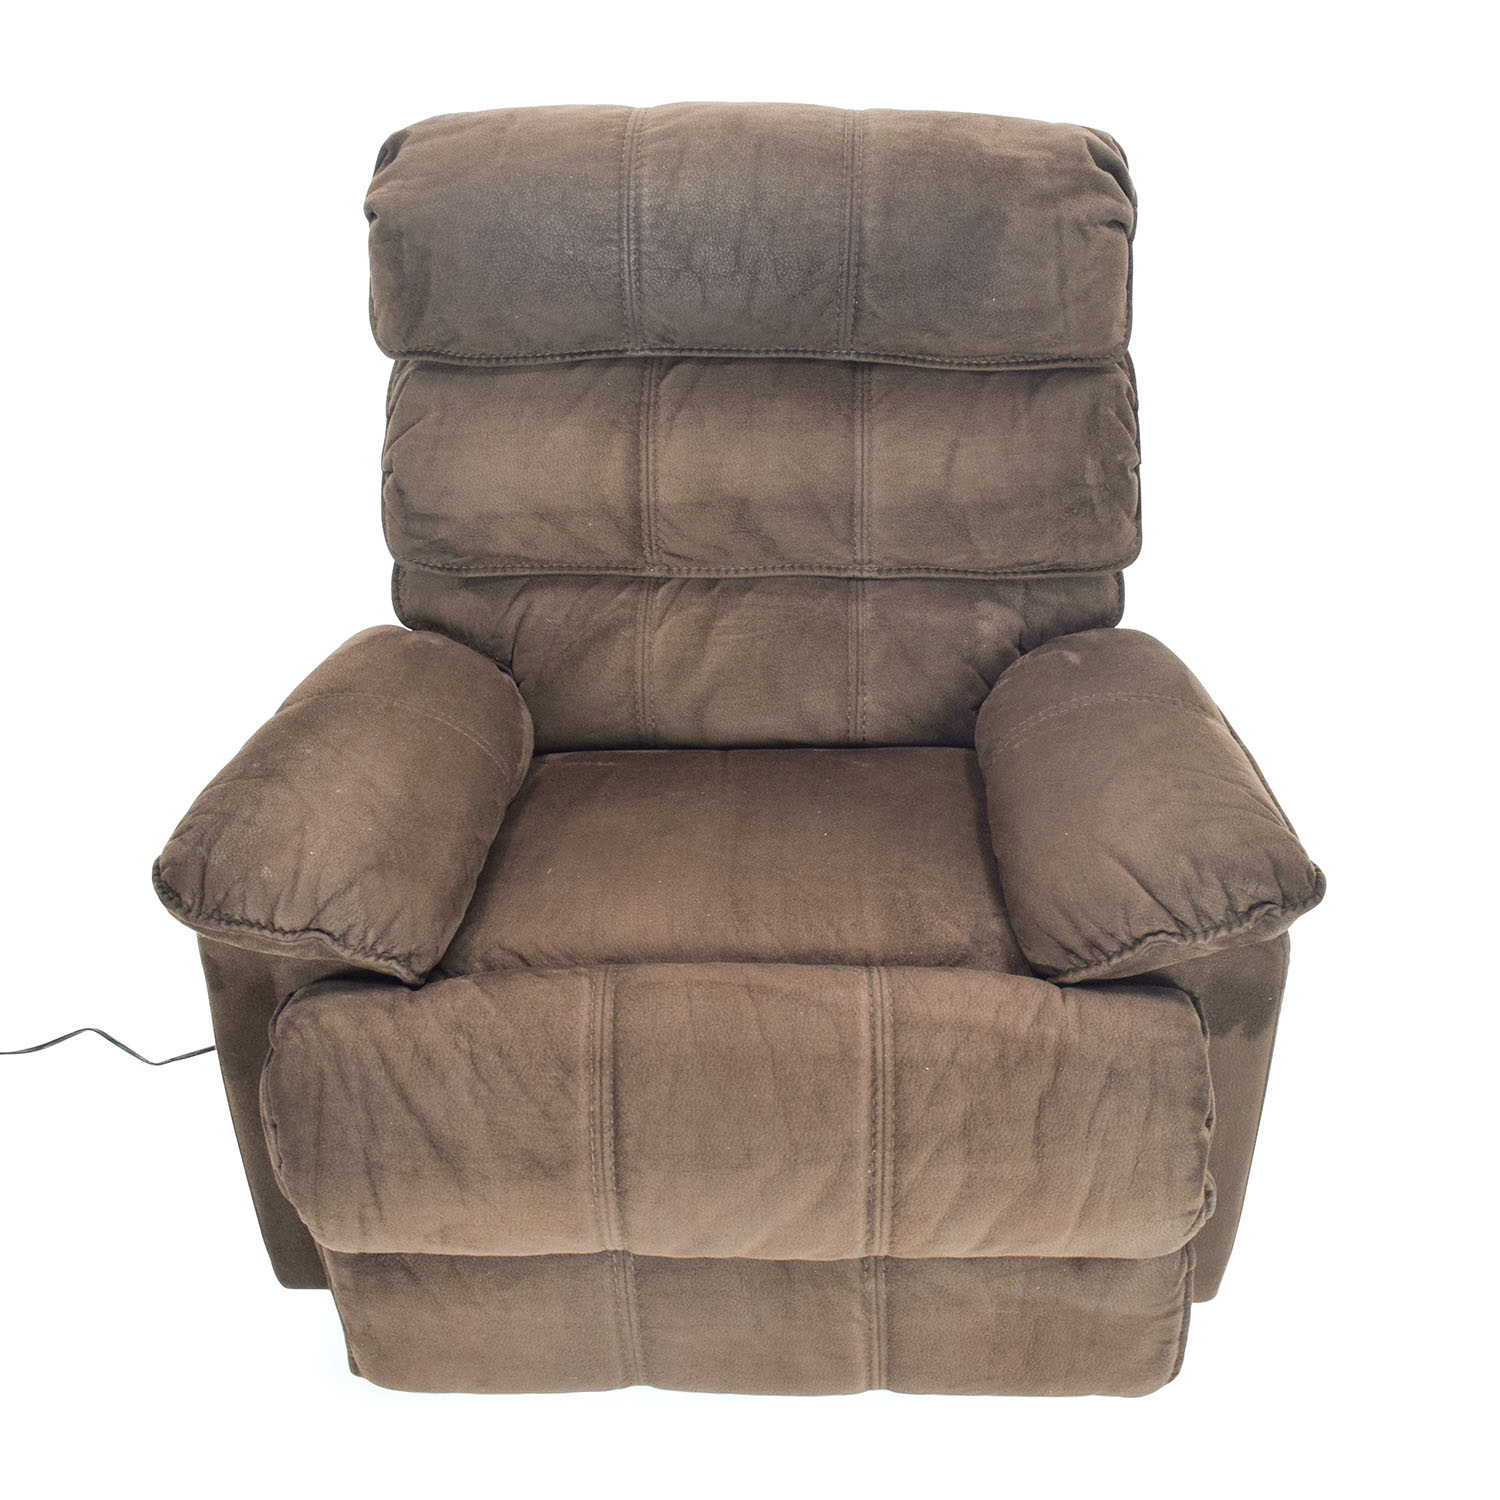 69 Off Macy S Macy S Recliner Chair Chairs